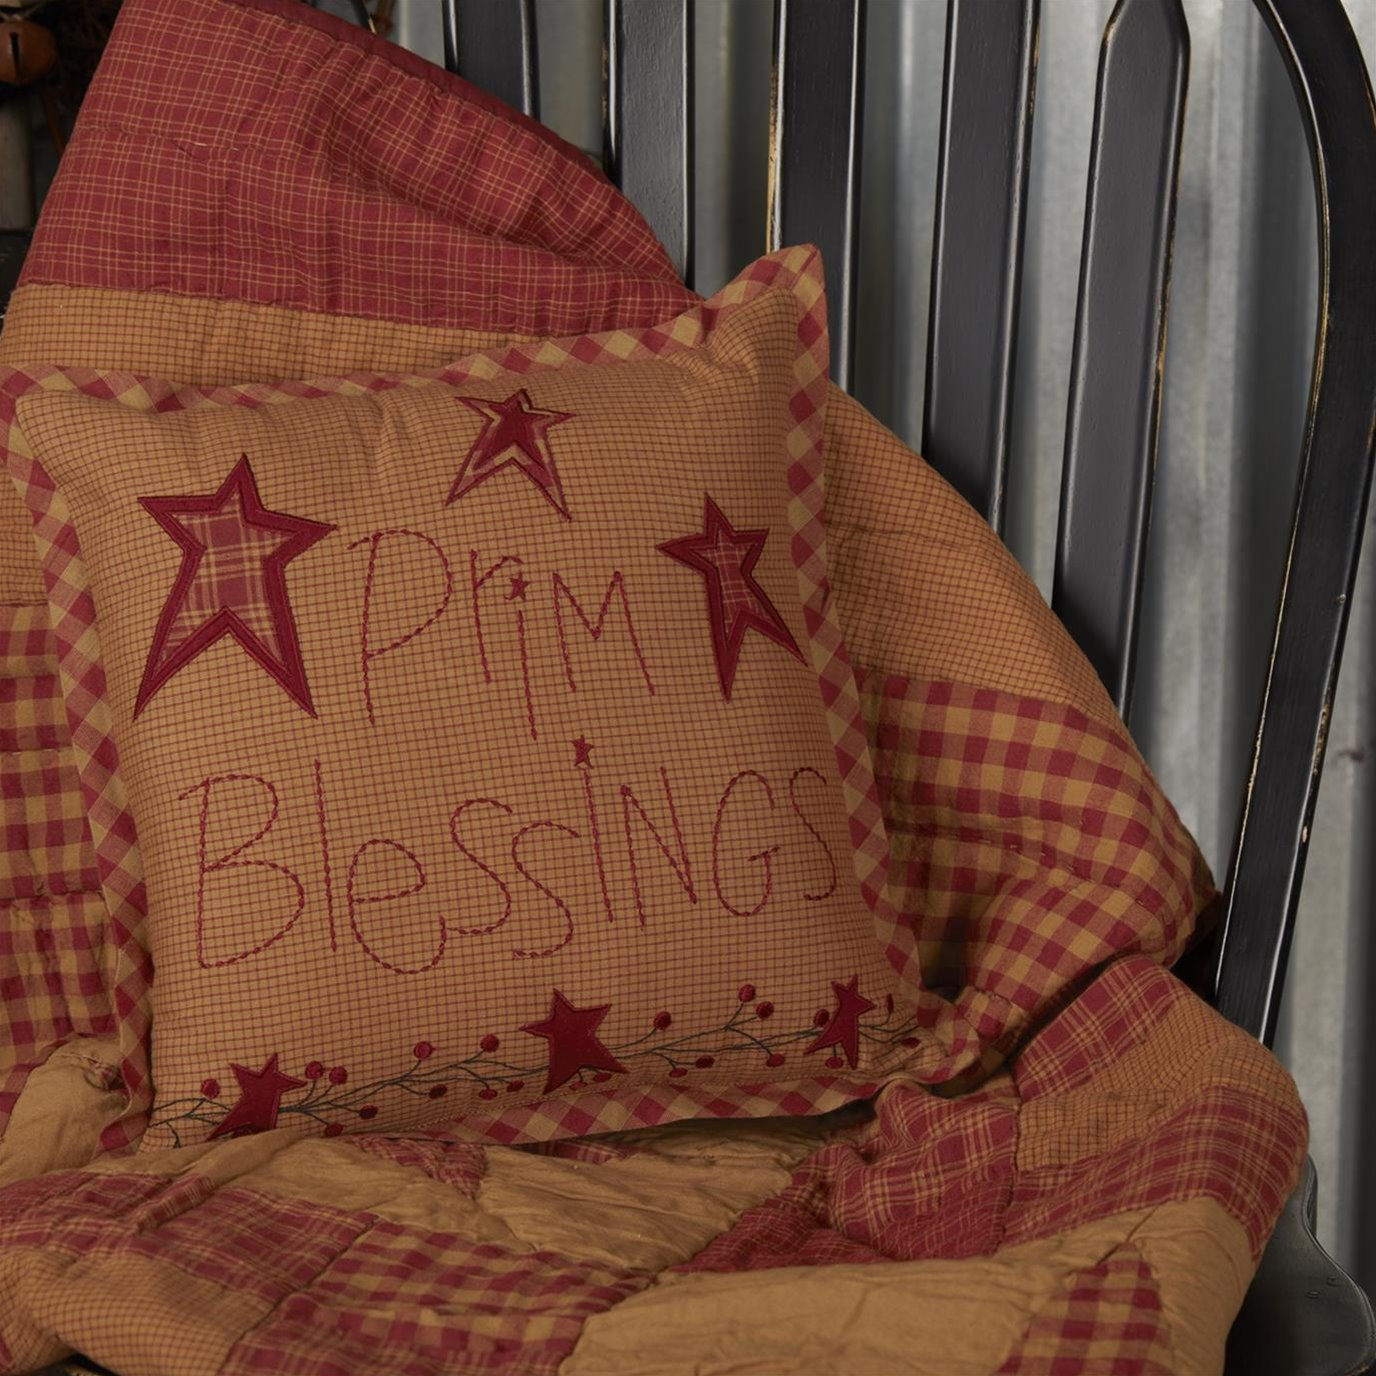 Ninepatch Star Prim Blessings Pillow 12x12